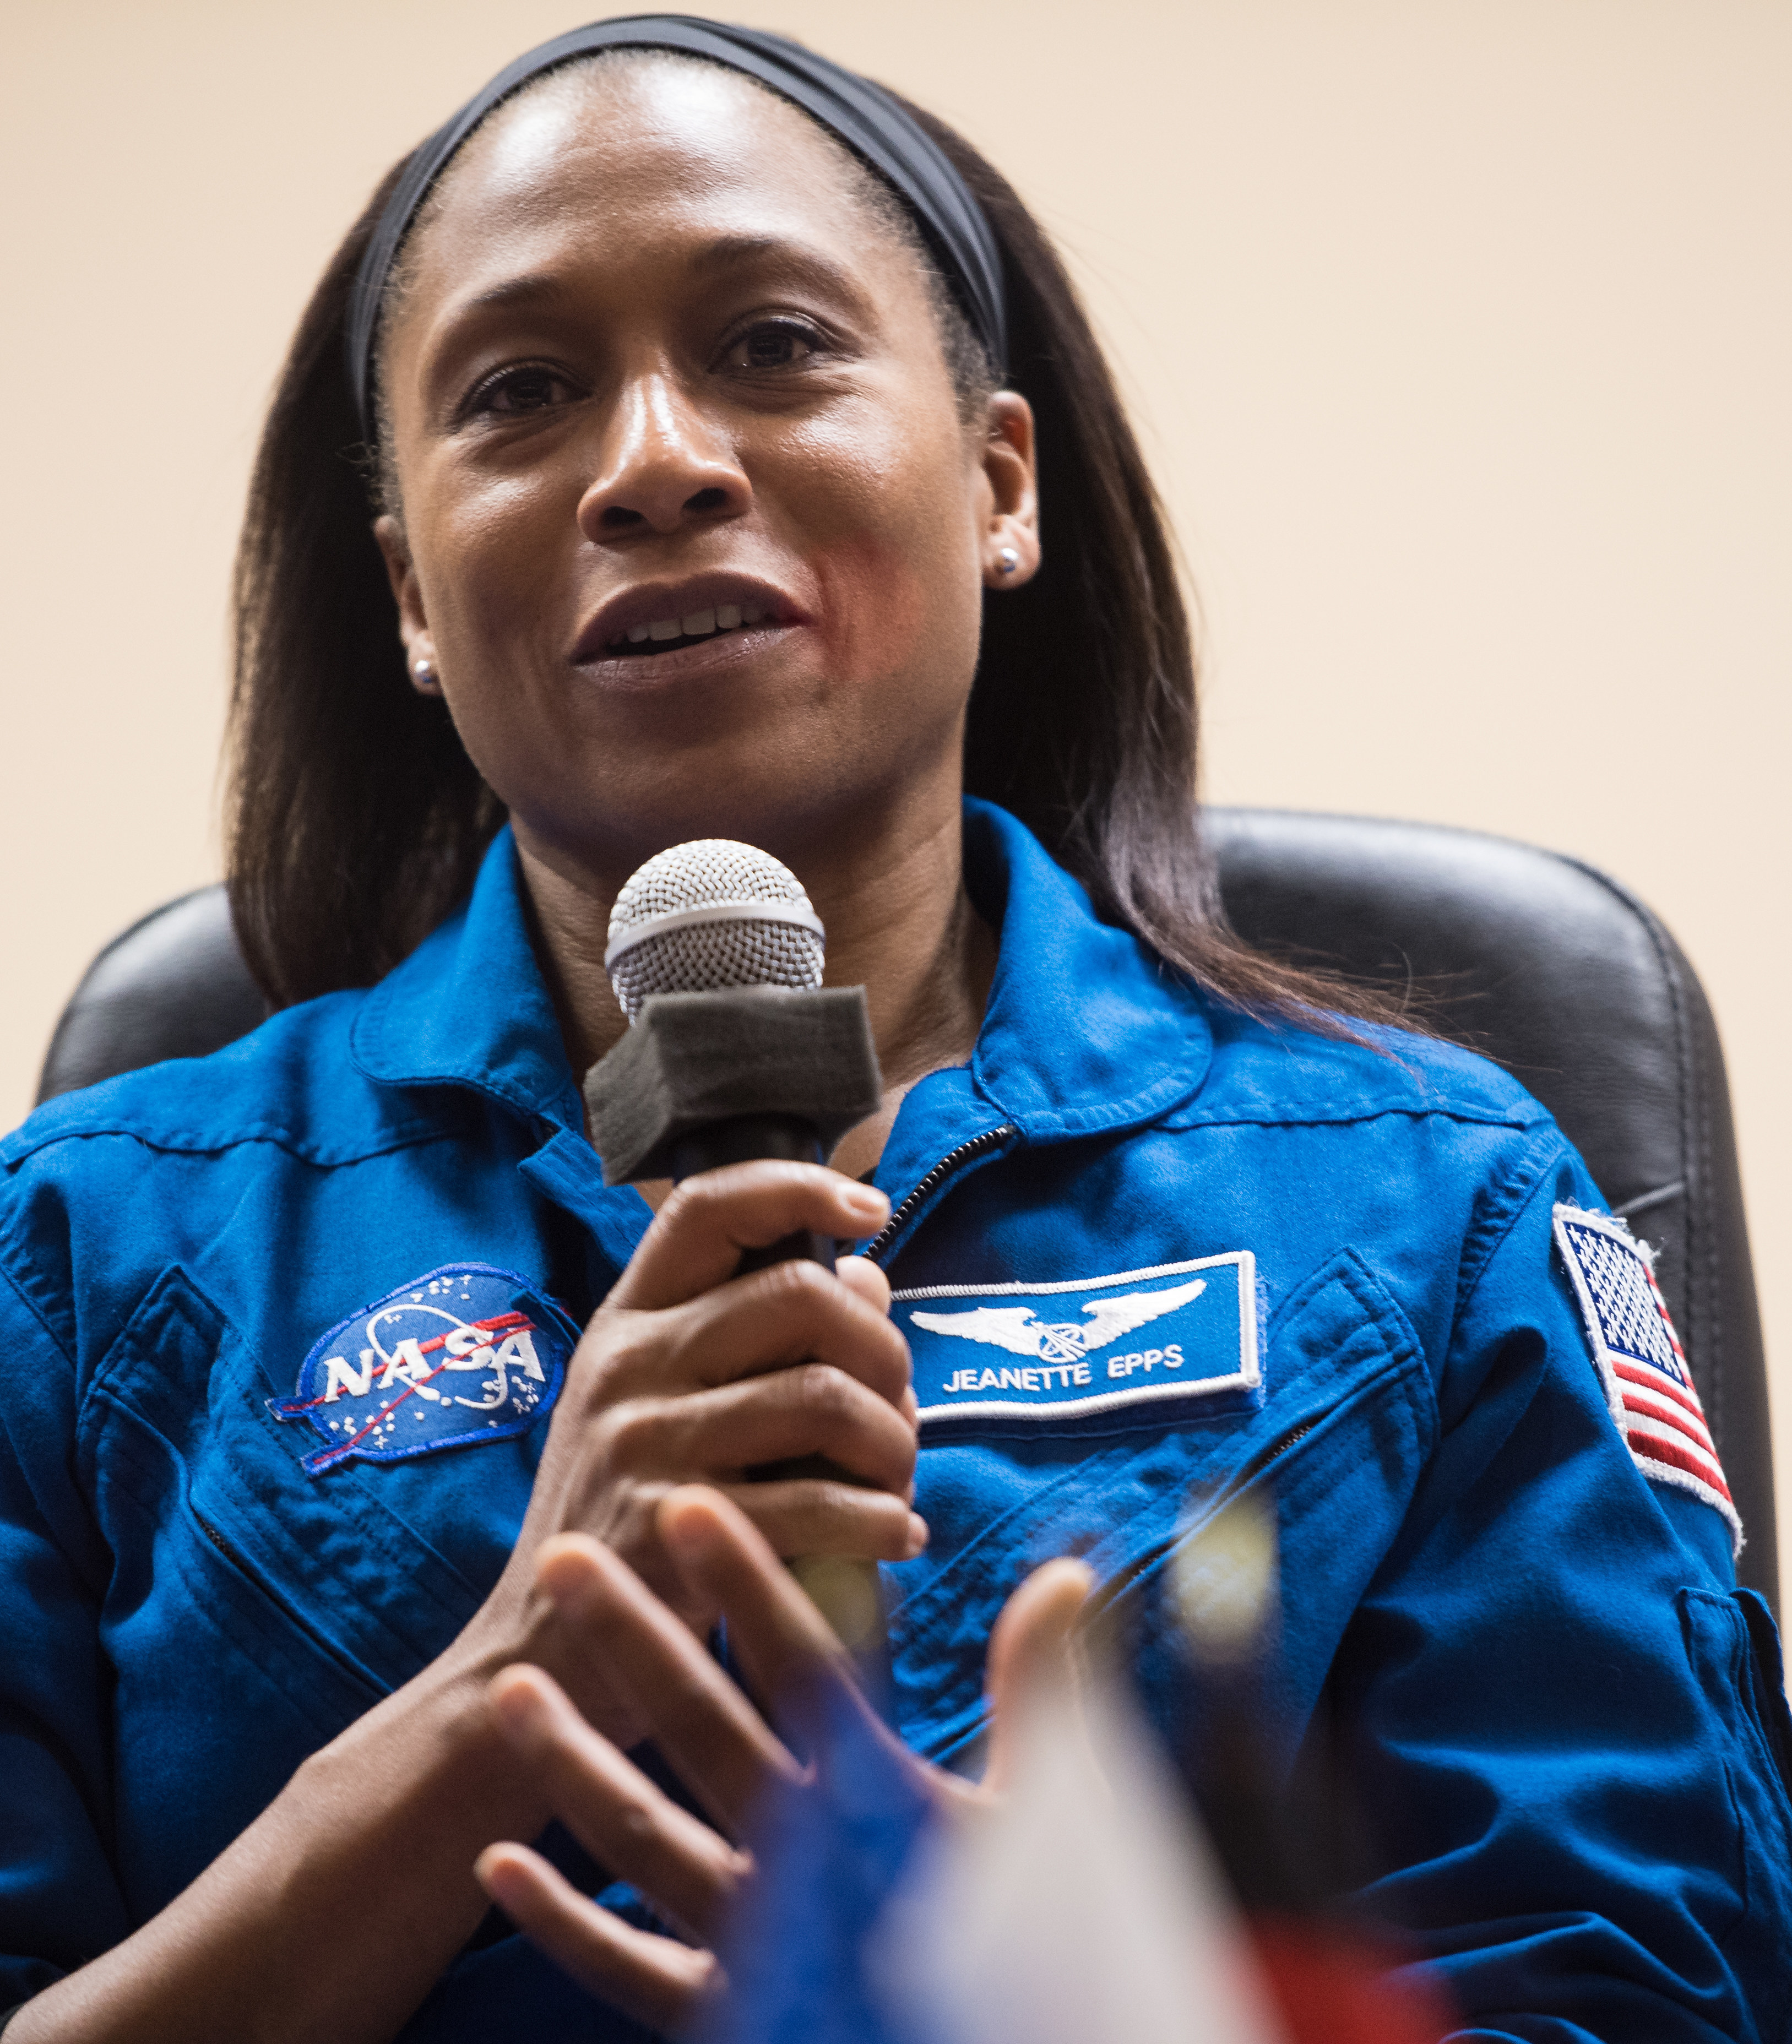 Expedition 54 backup crew member Jeanette Epps